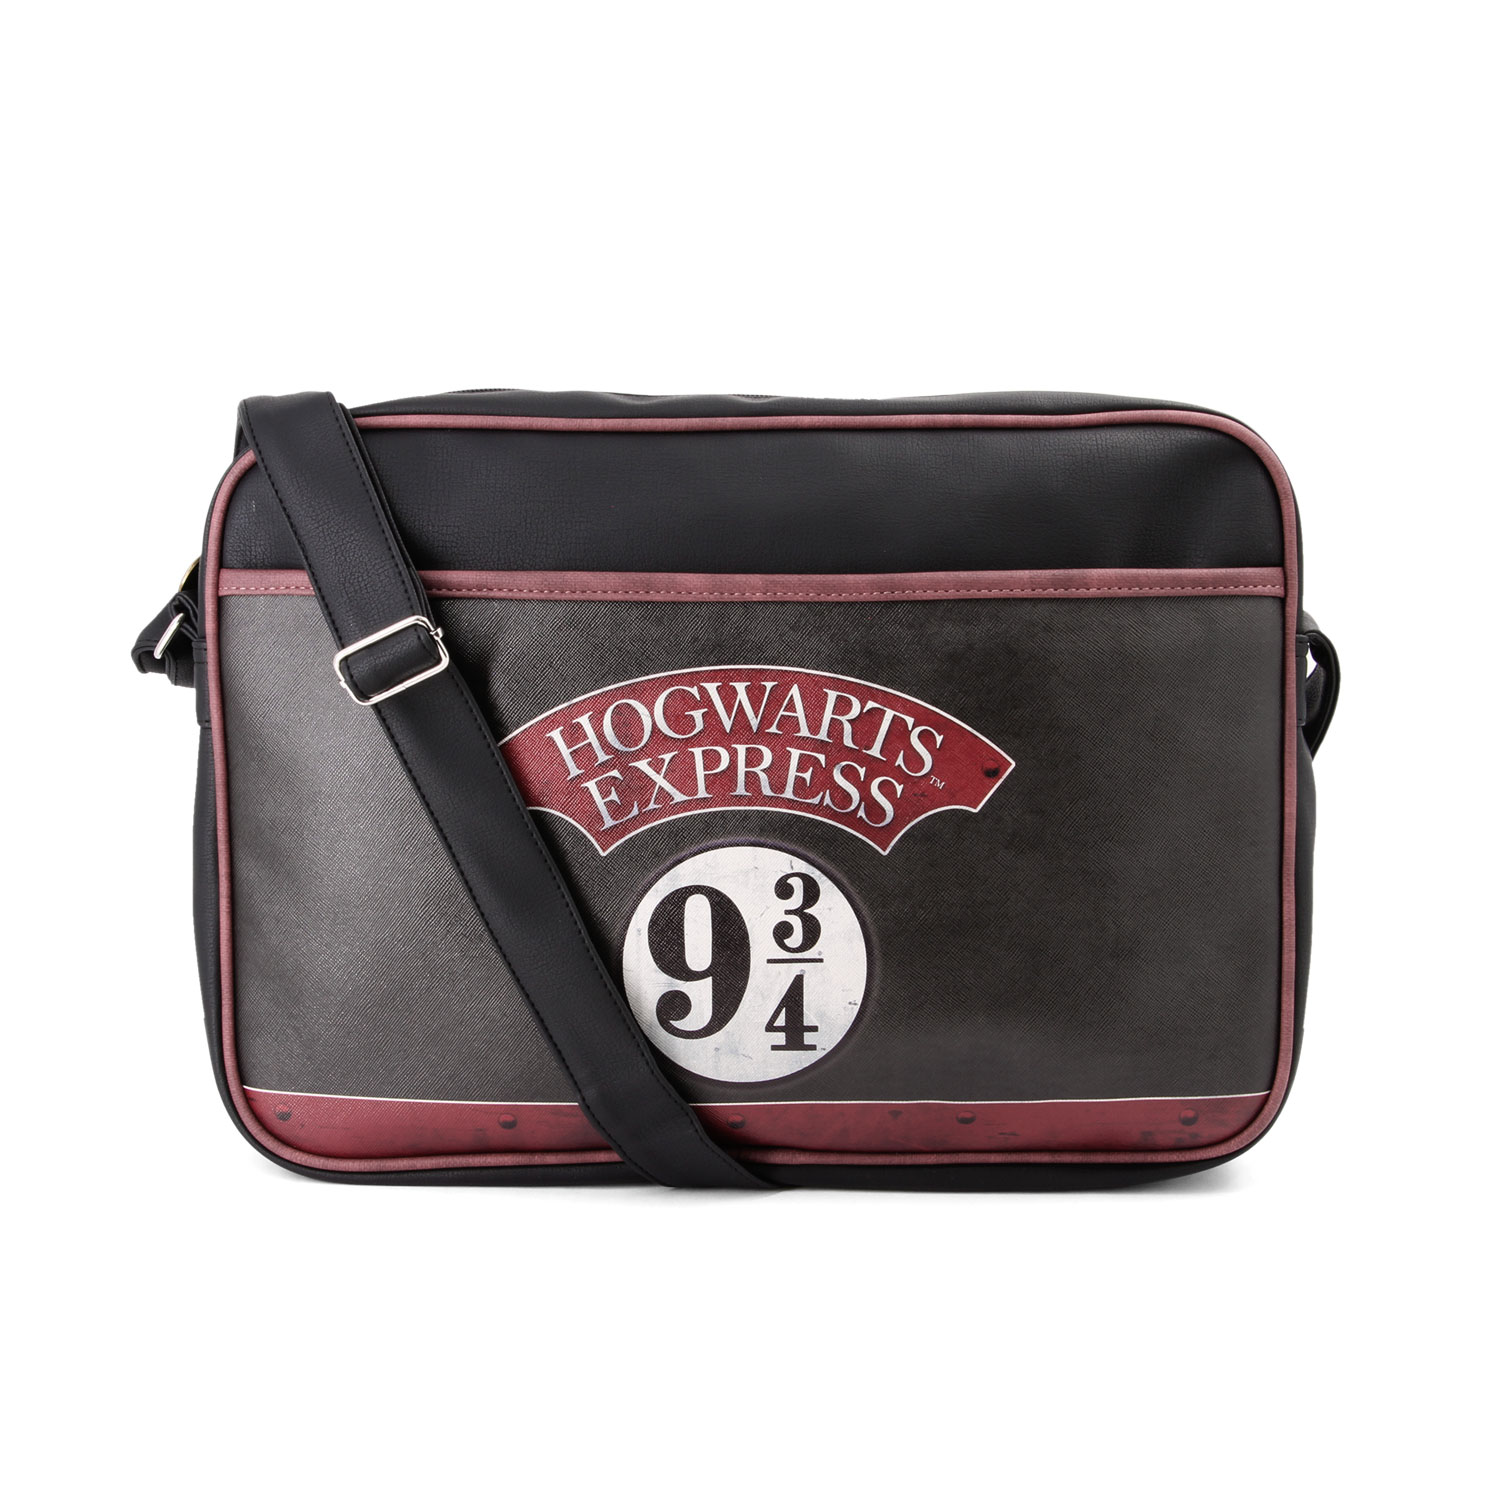 KM - Bandolera Harry Potter Hogwarts Express